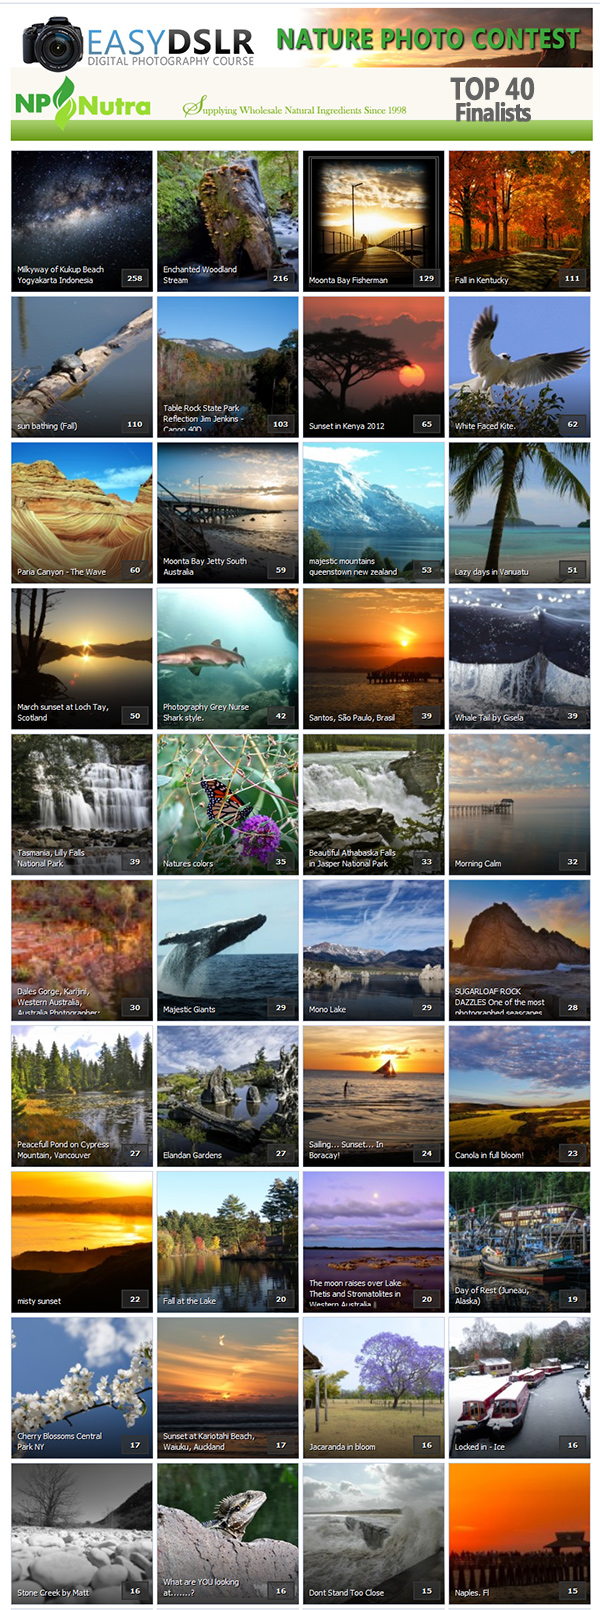 easydslrNaturePhotoContestTop40 Top 40 Finalists in EasyDSLR Photo Contest